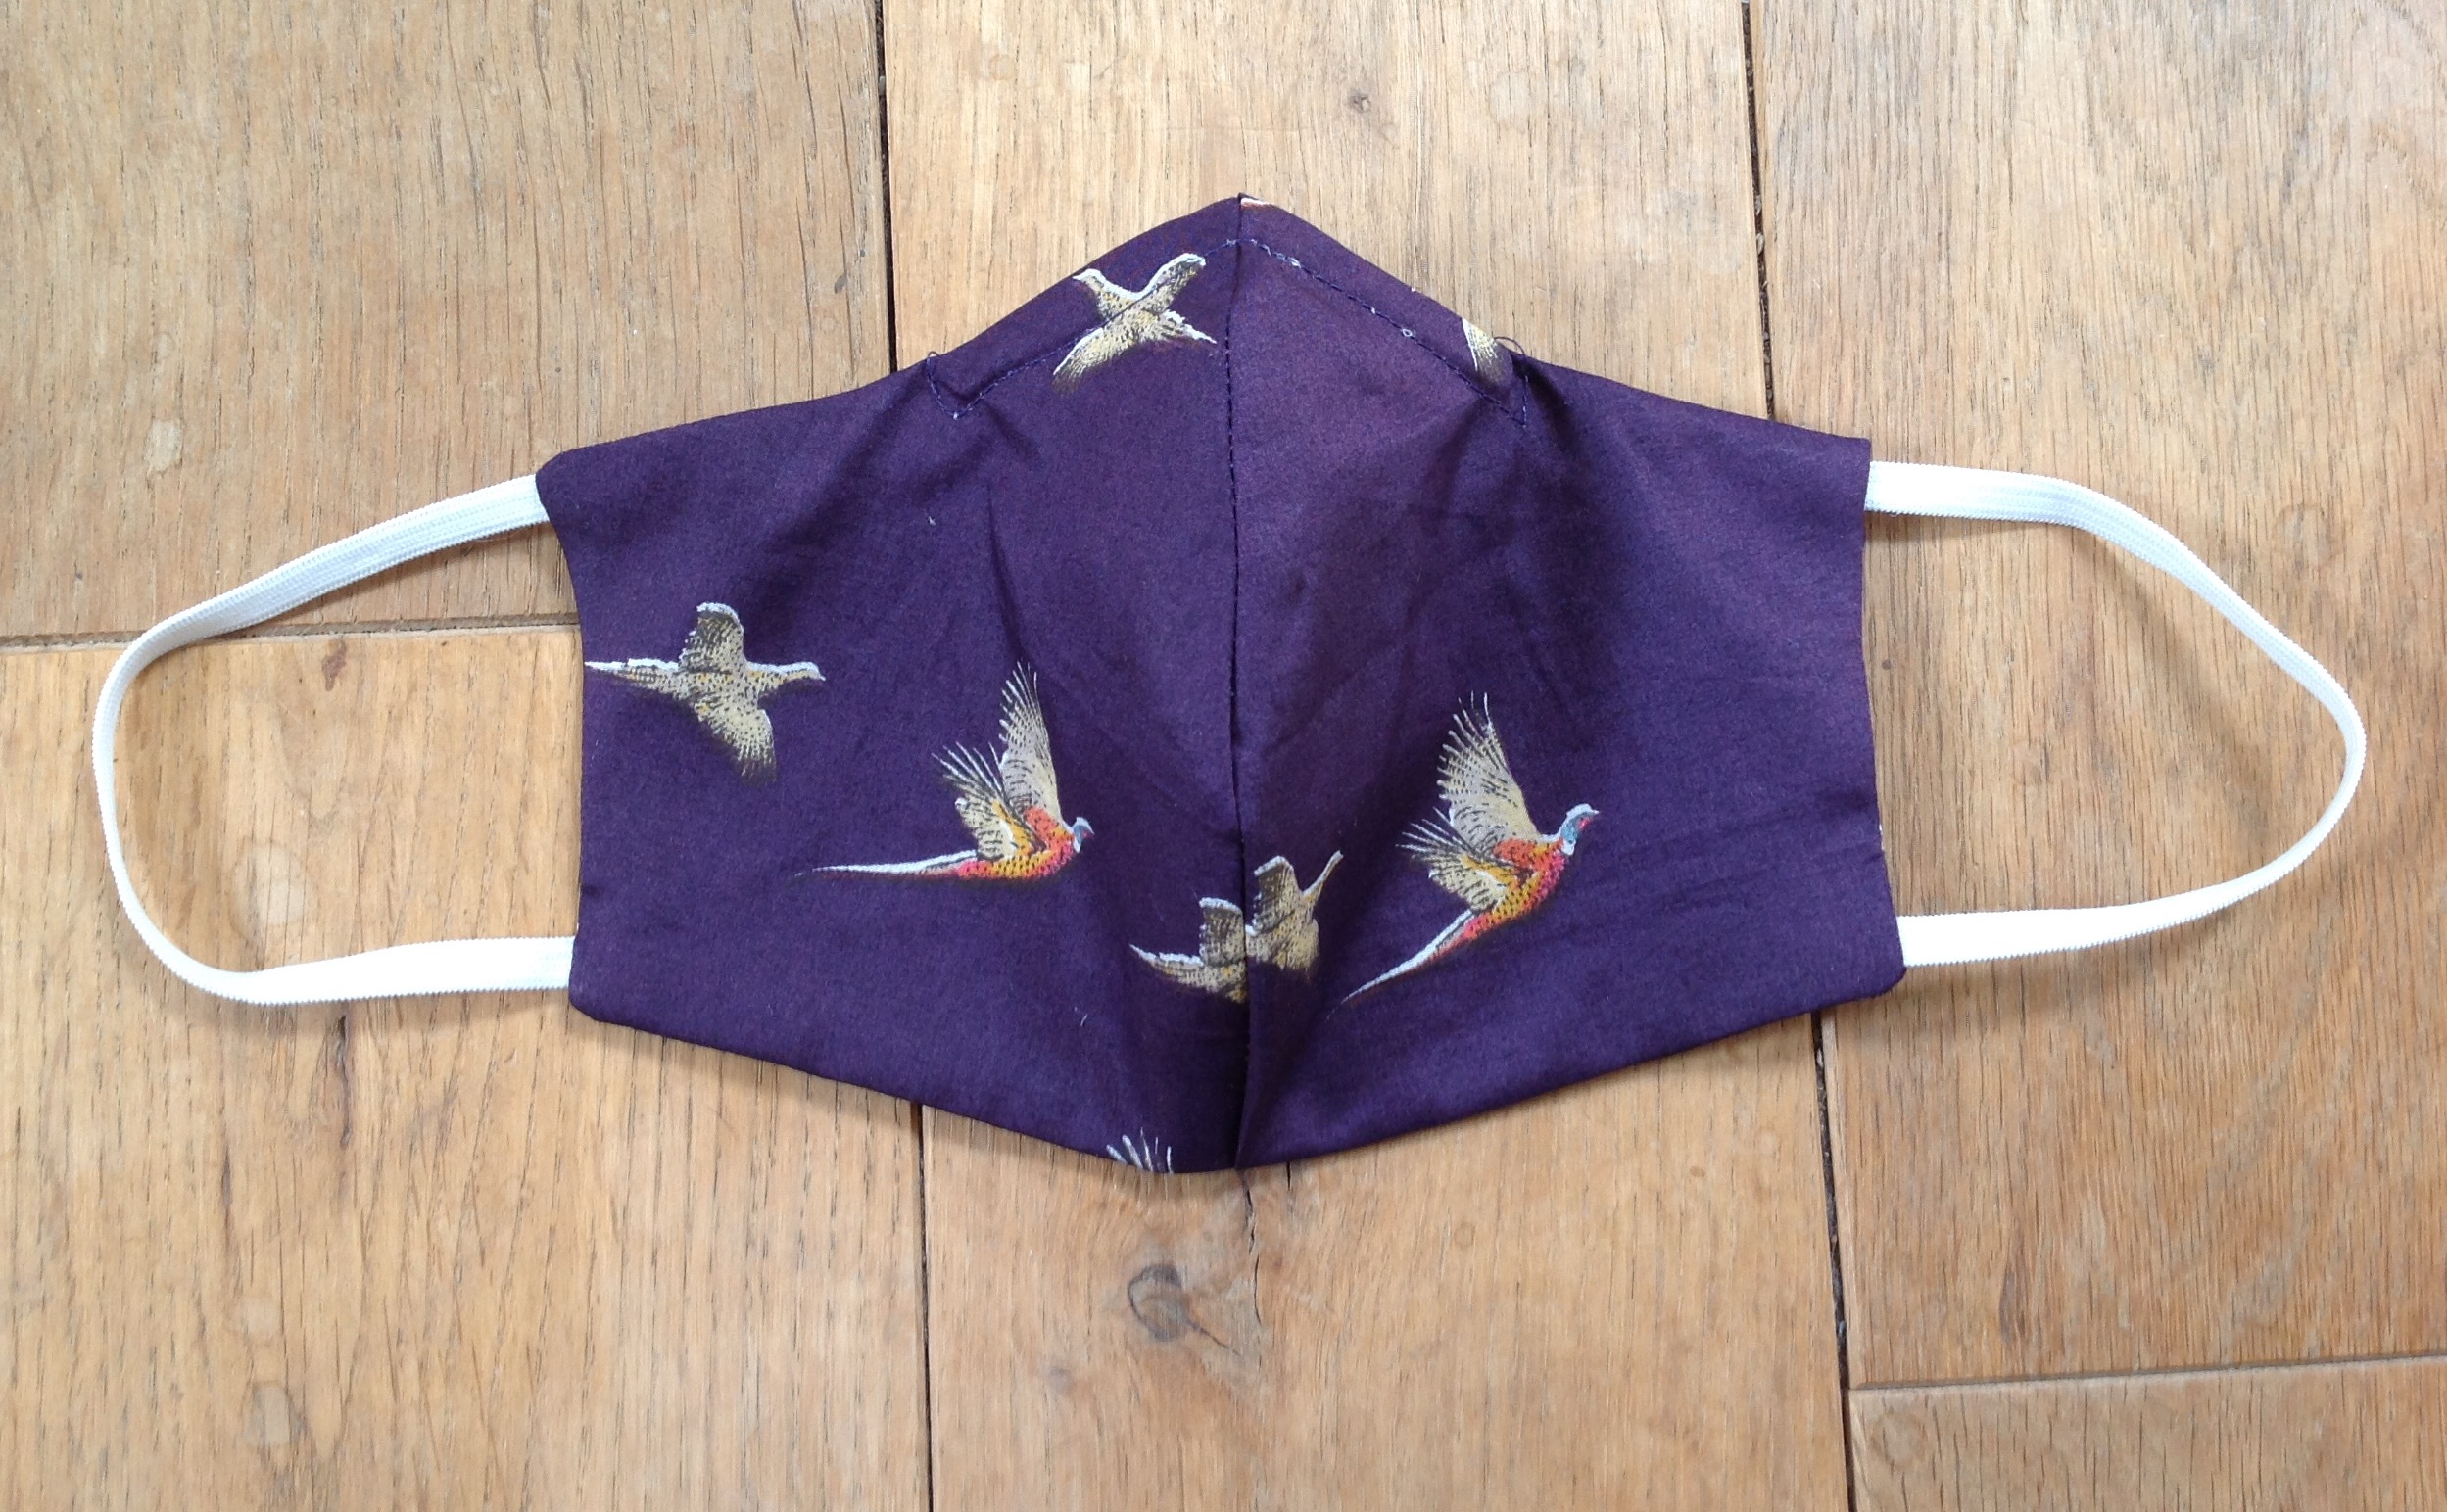 Shaped face covering - tana lawn cotton Pheasant purple